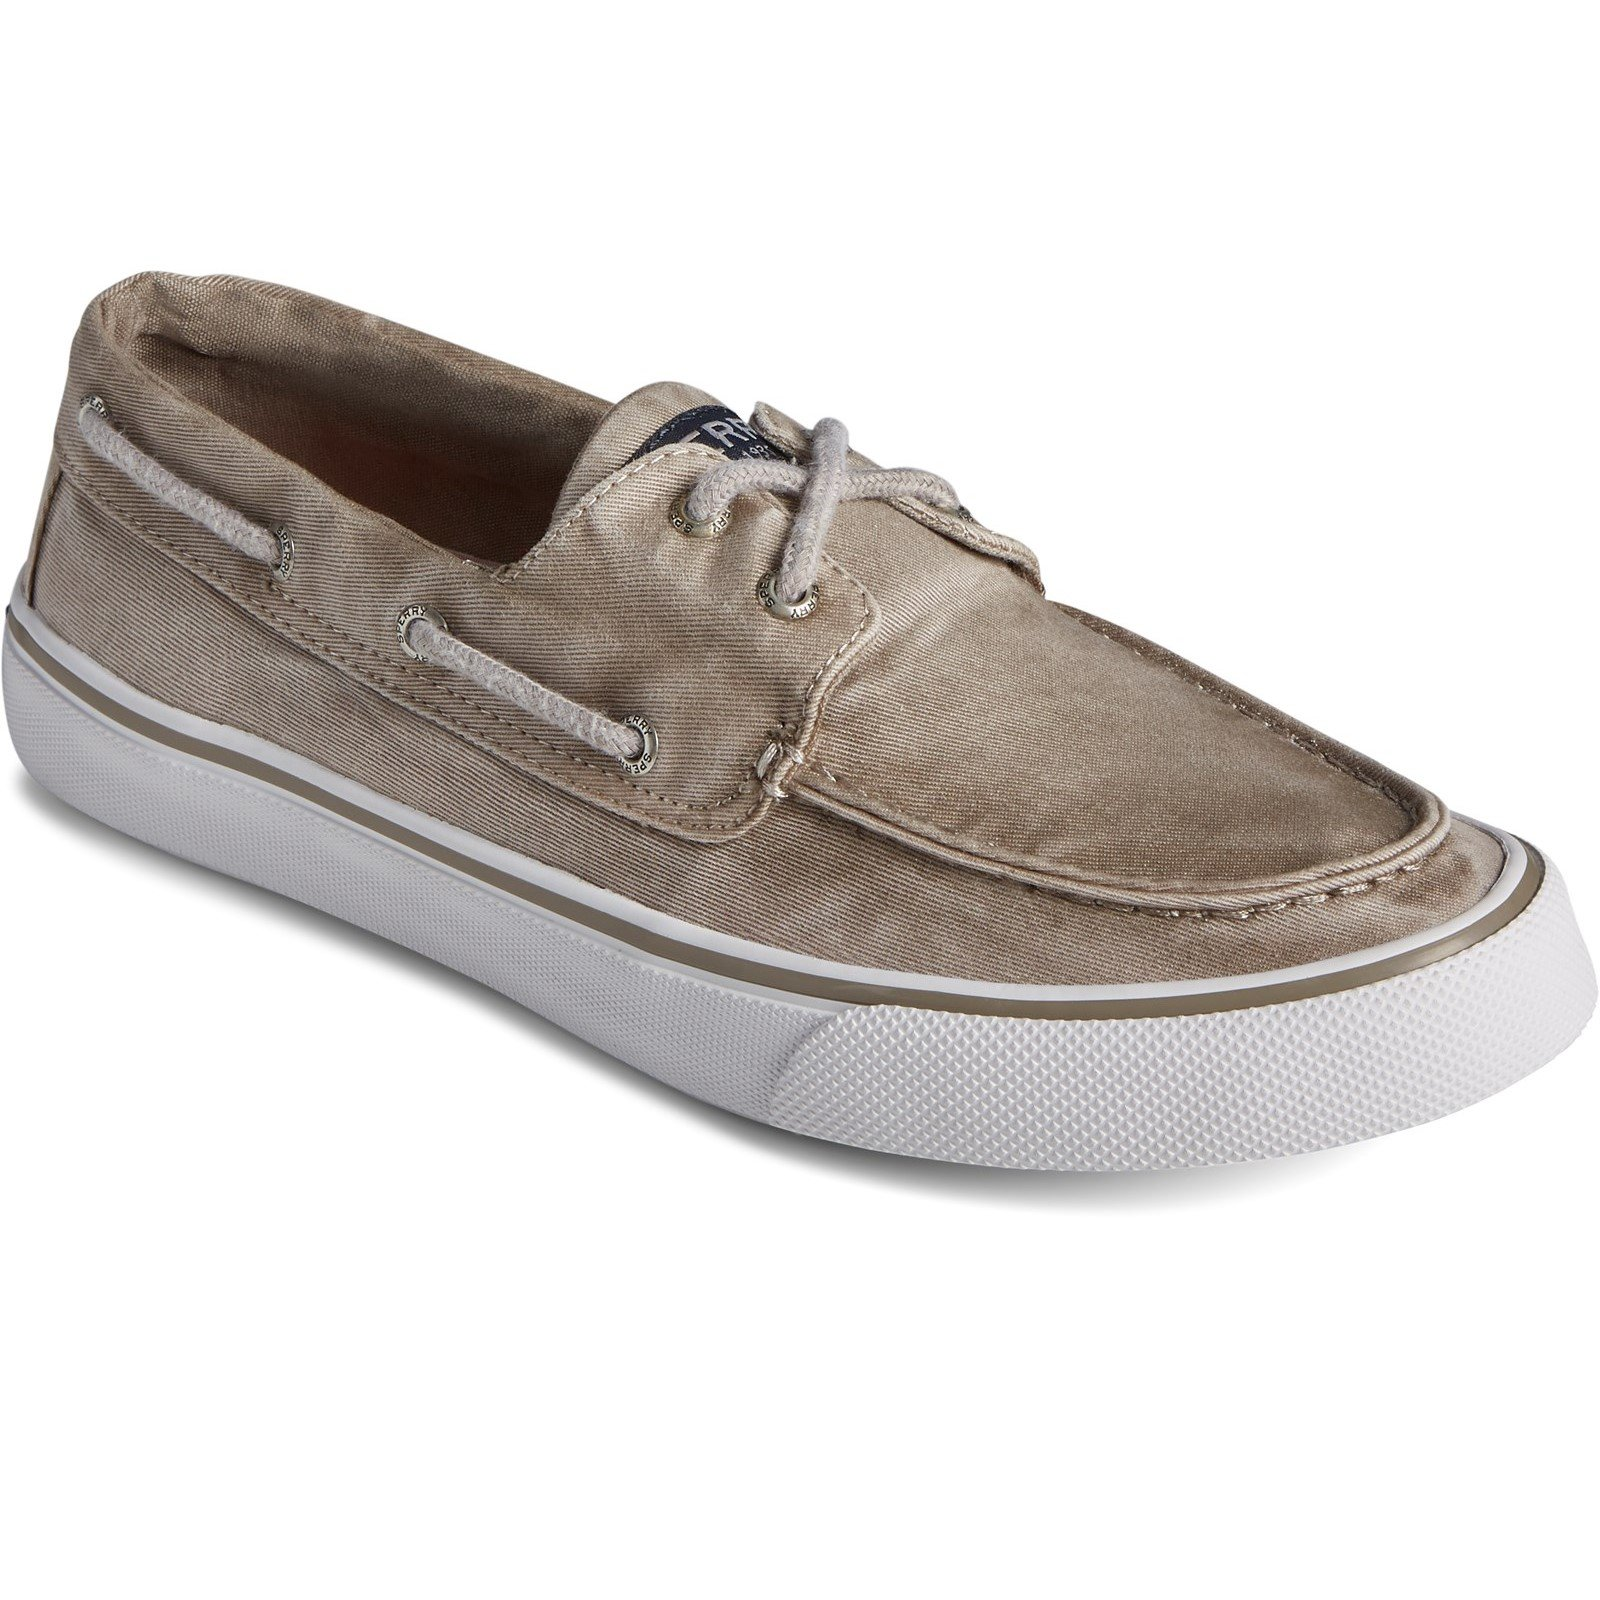 Sperry Men's Bahama II Boat Shoe Various Colours 32923 - Taupe 9